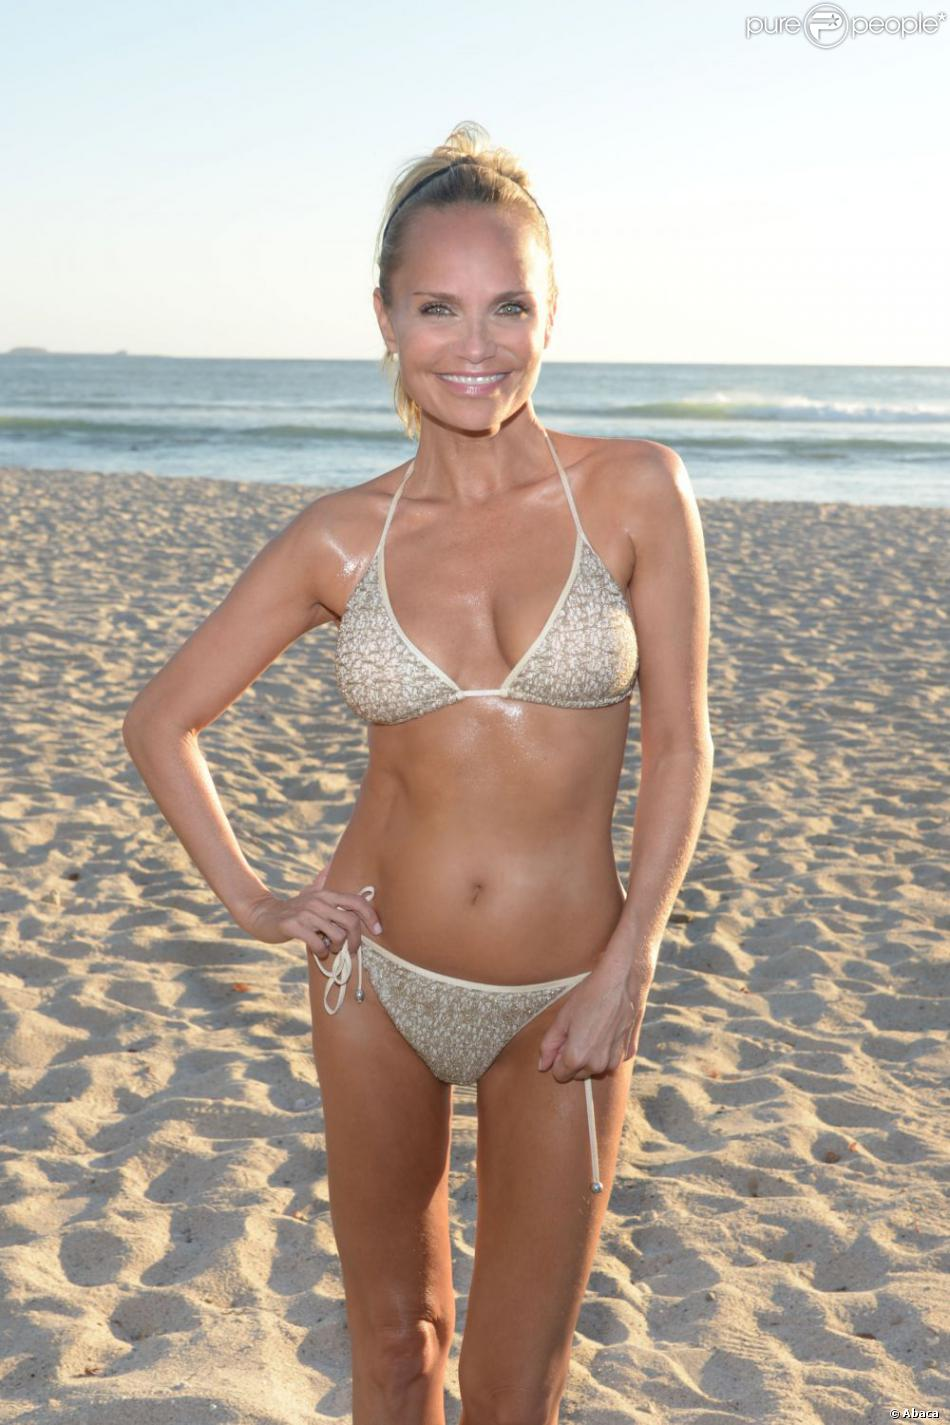 With her slim body and Light blond hairtype without bra (cup size 32B) on the beach in bikini